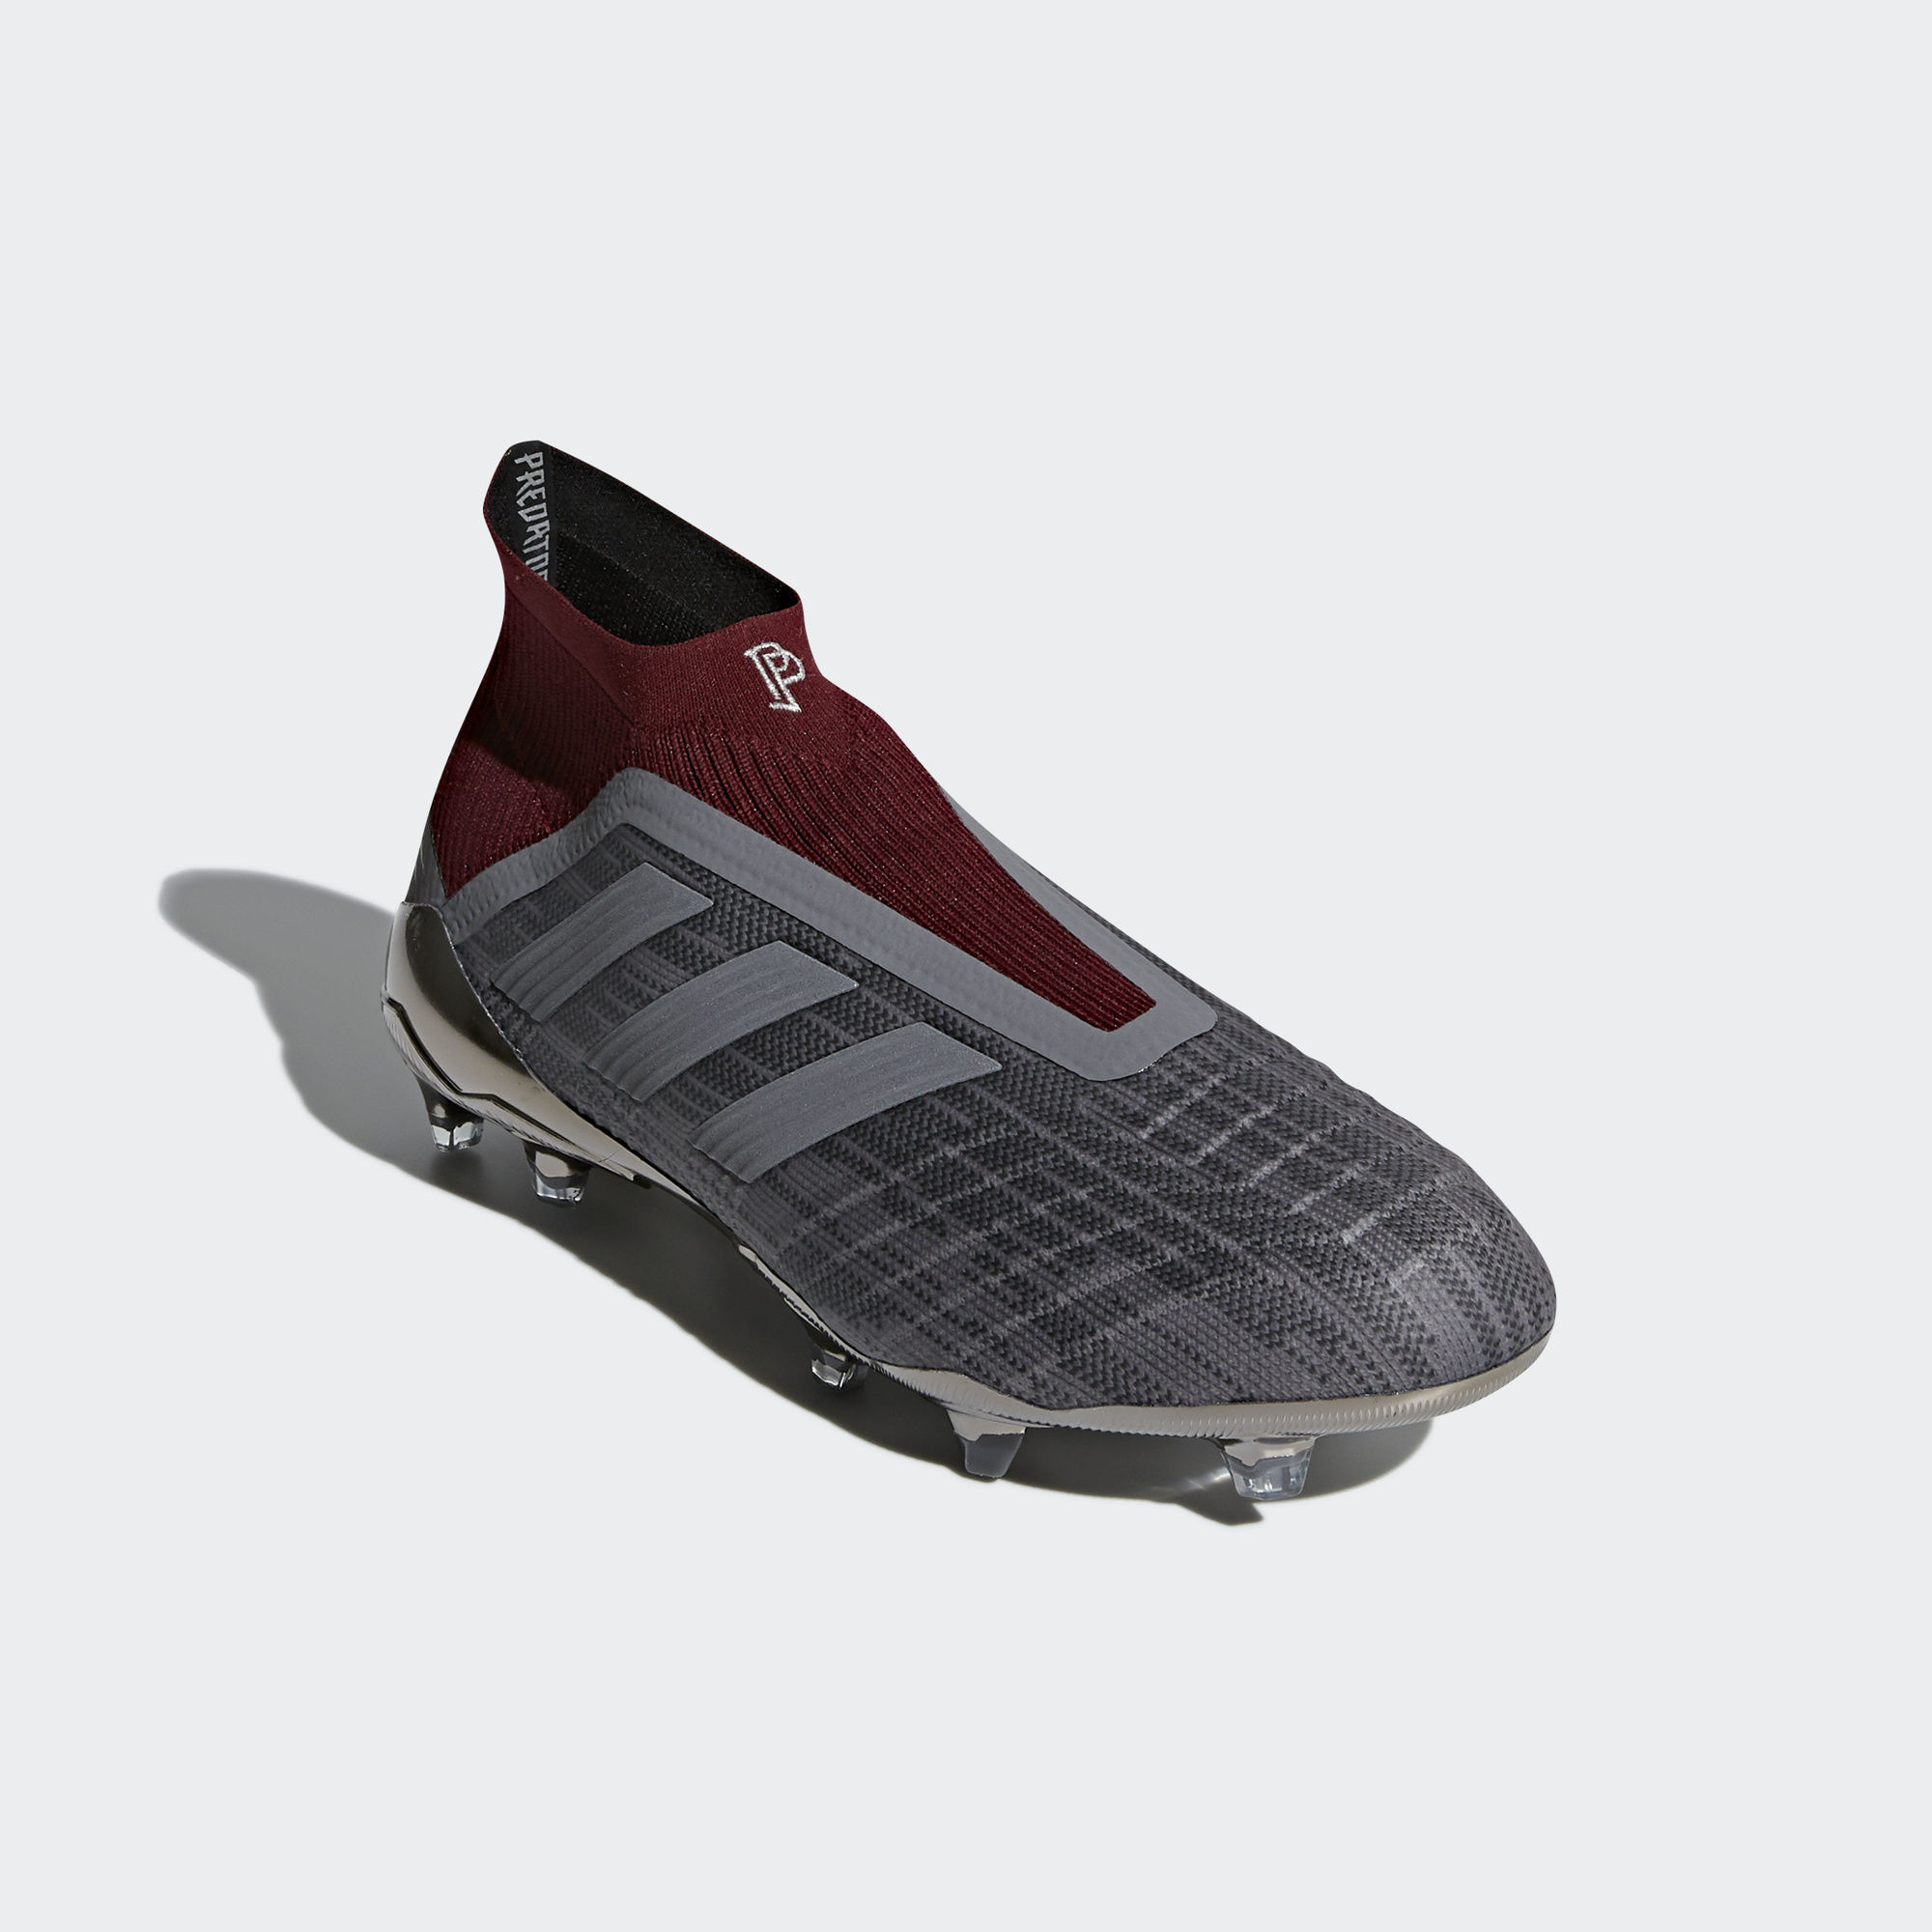 adidas_paul_pogba_predator_18_fg_iron_metallic_iron_metallic_iron_metallic_e